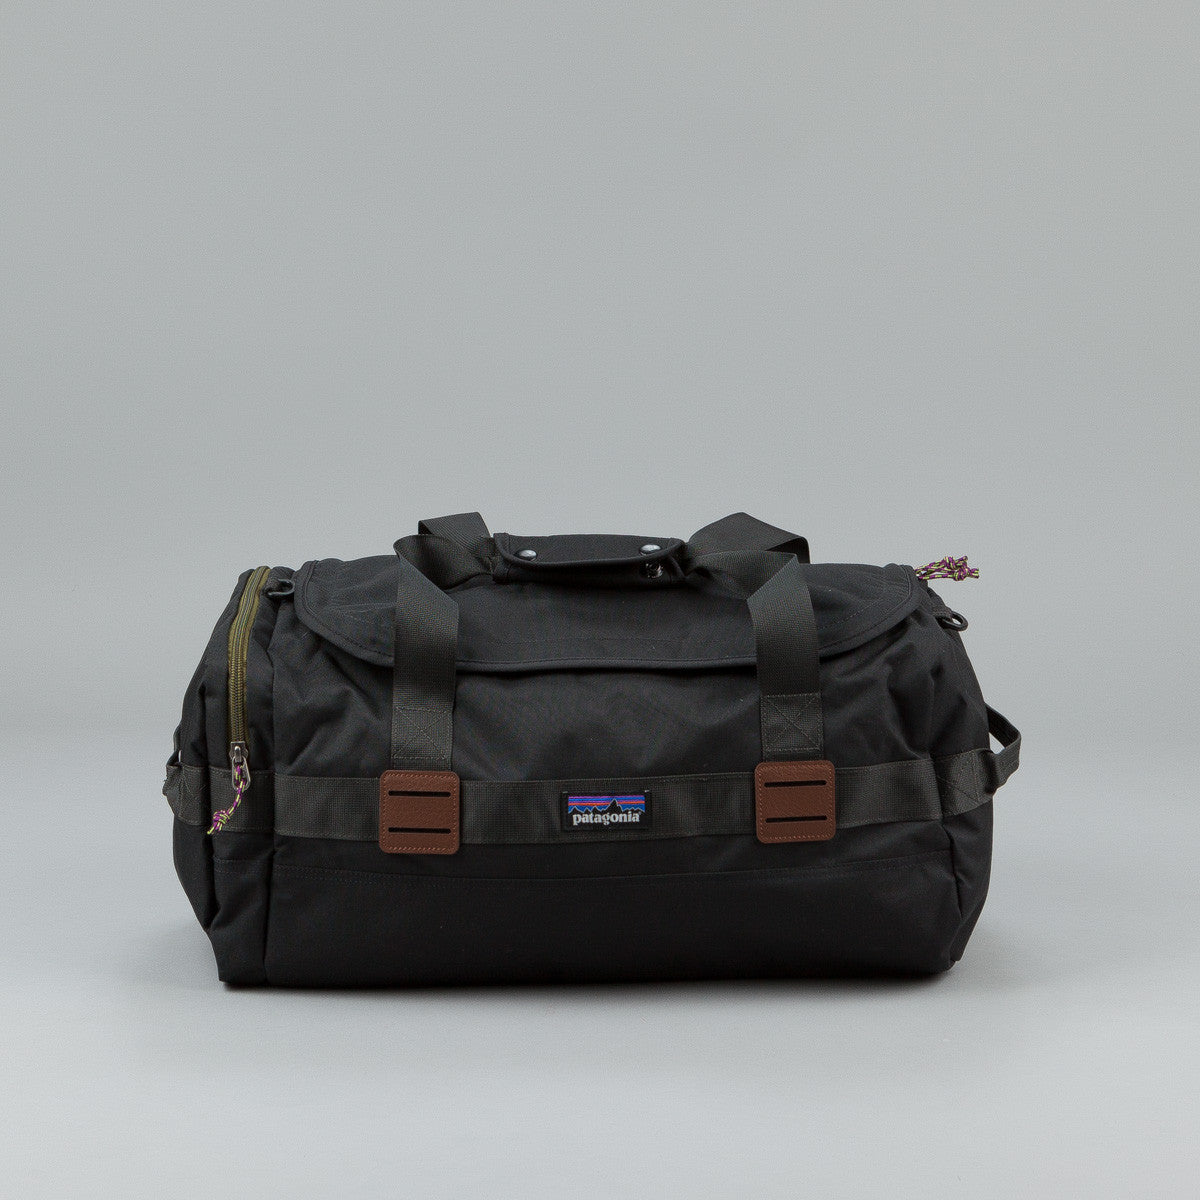 Patagonia Arbor Duffel Bag - Rockwall